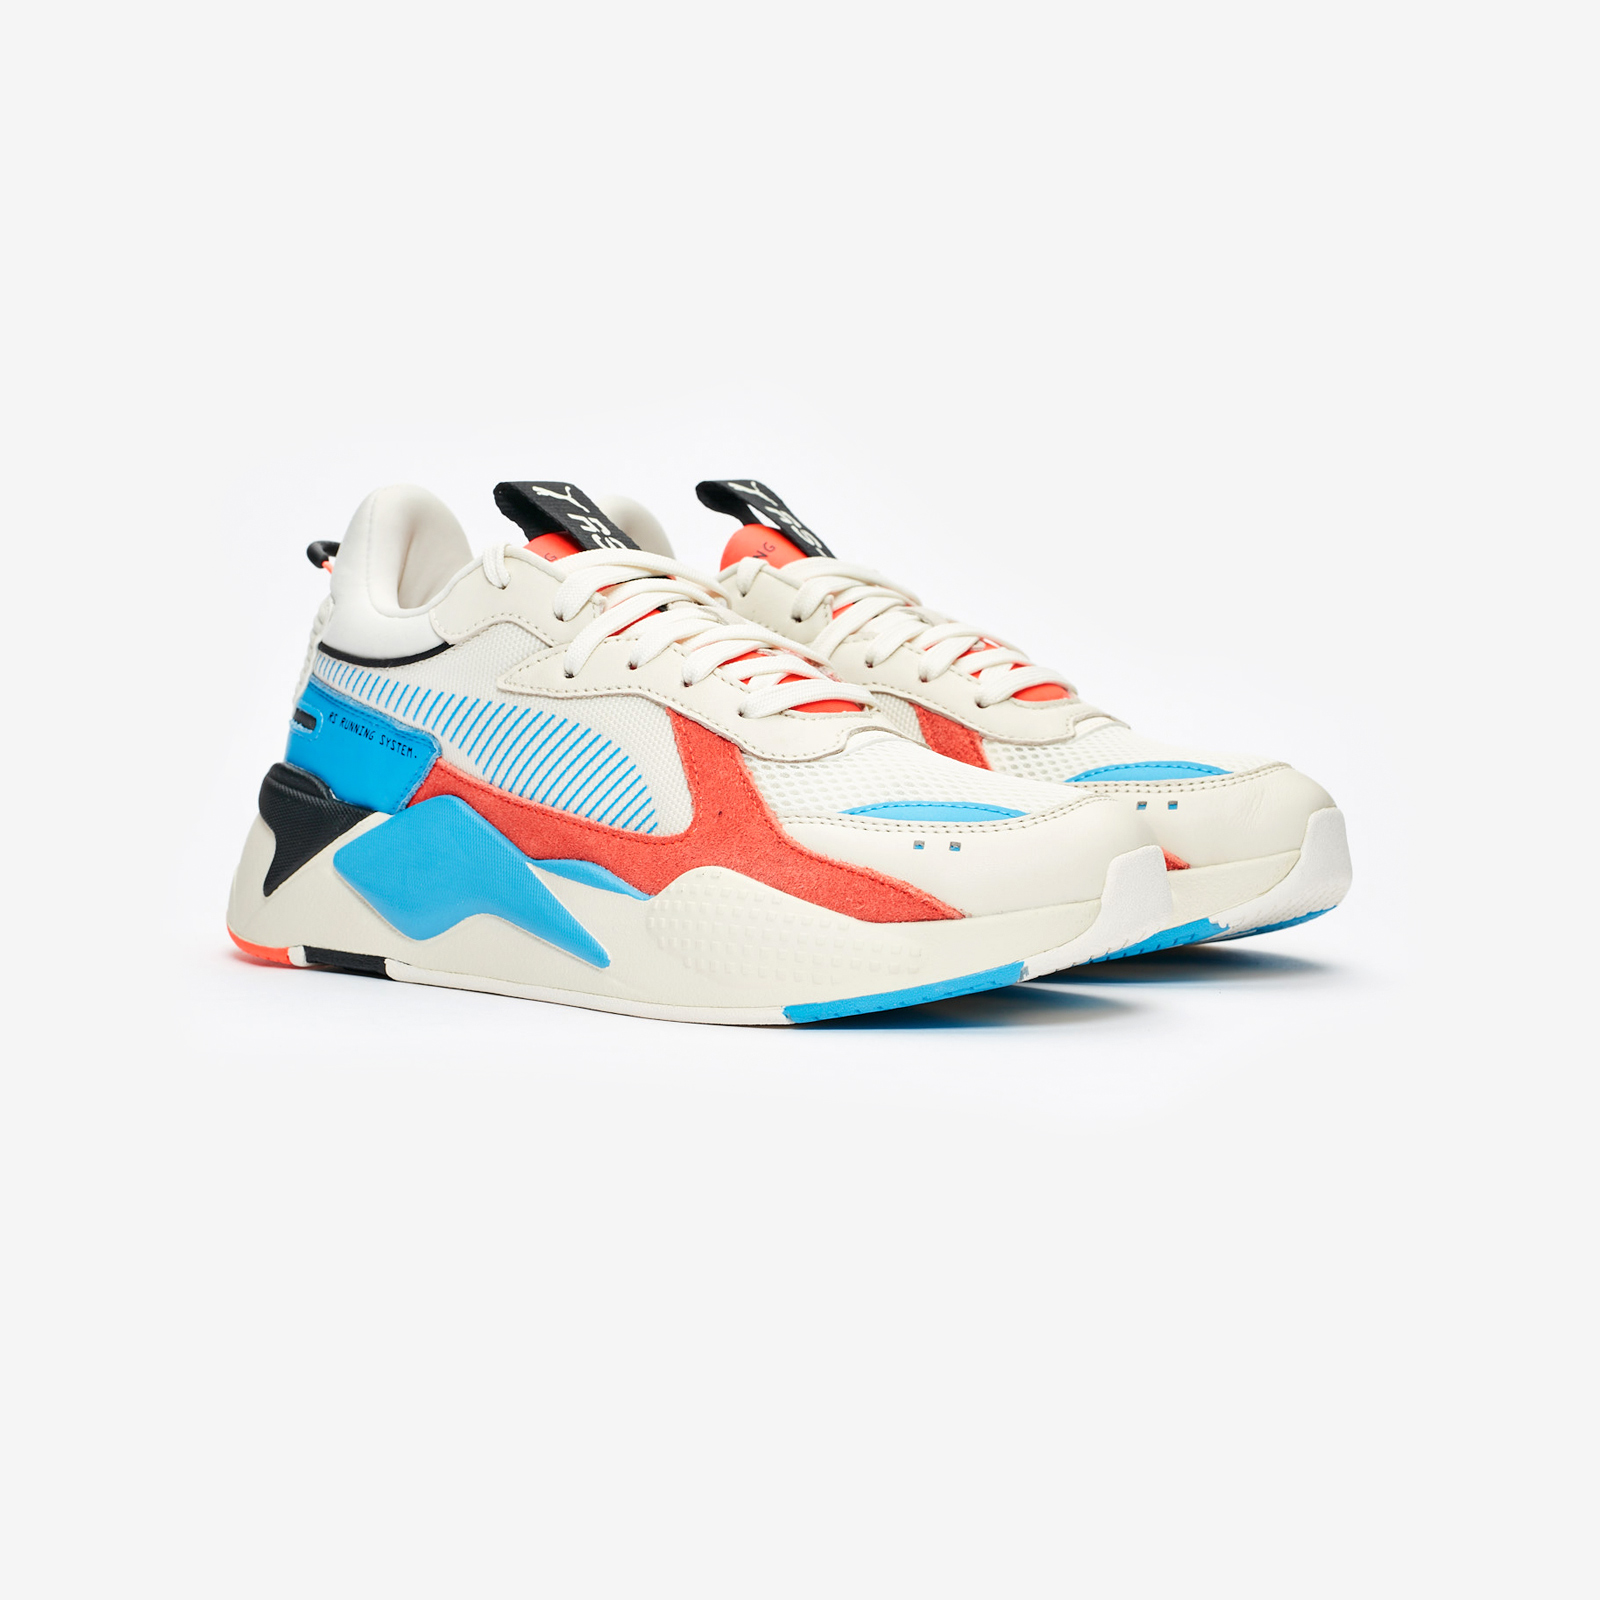 Puma RS-X Reinvention - 369579-01 - Sneakersnstuff  24416e841